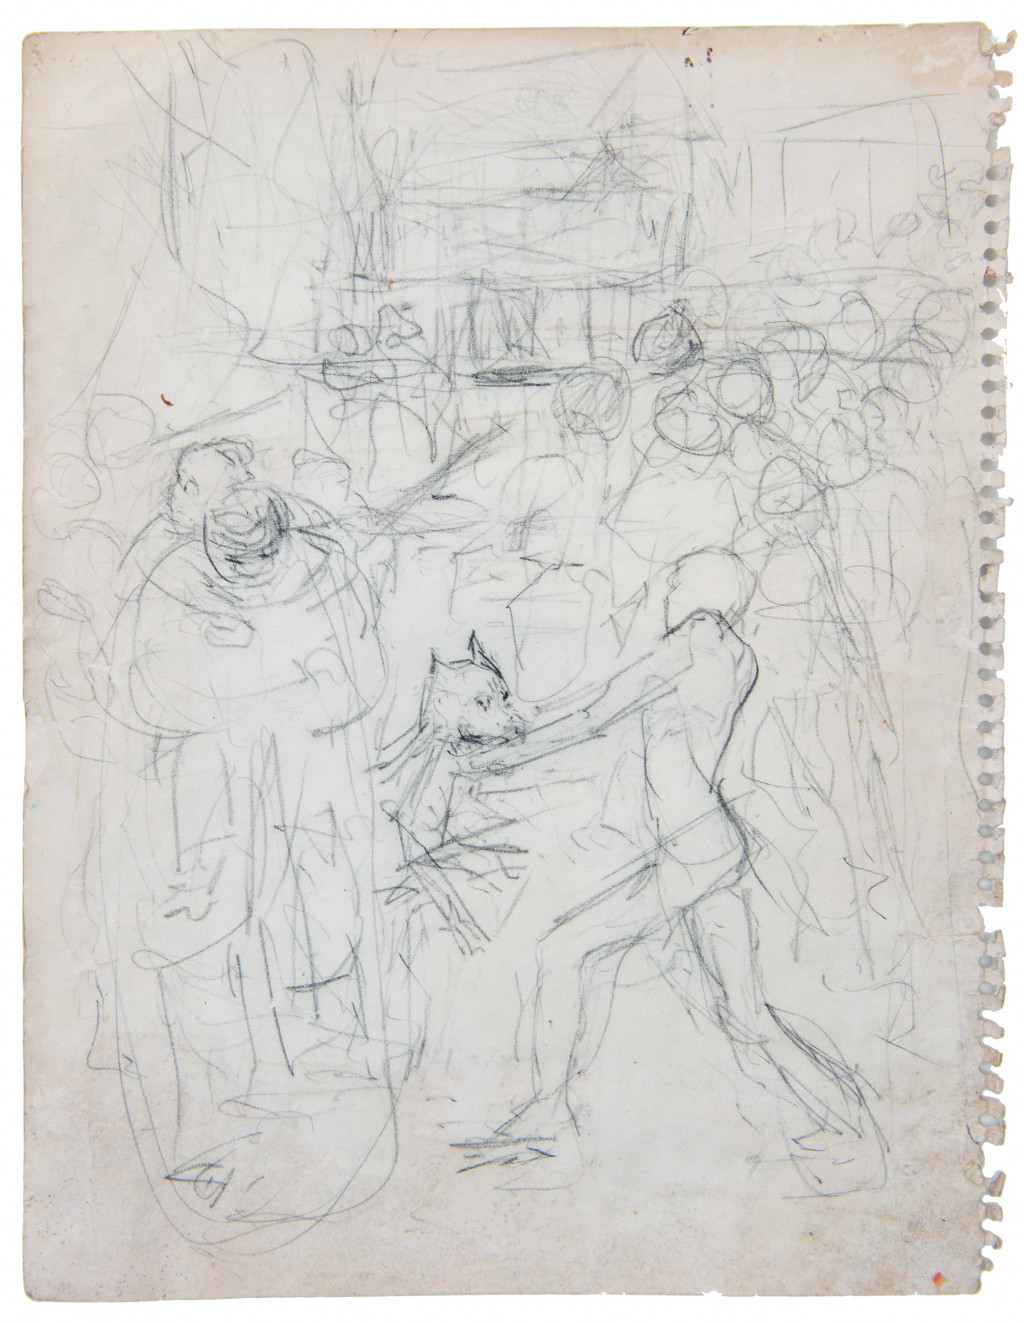 Armand Baag, sketch/preliminary study of Flight from the Plantation or Attack on the Plantation, 1981 or later